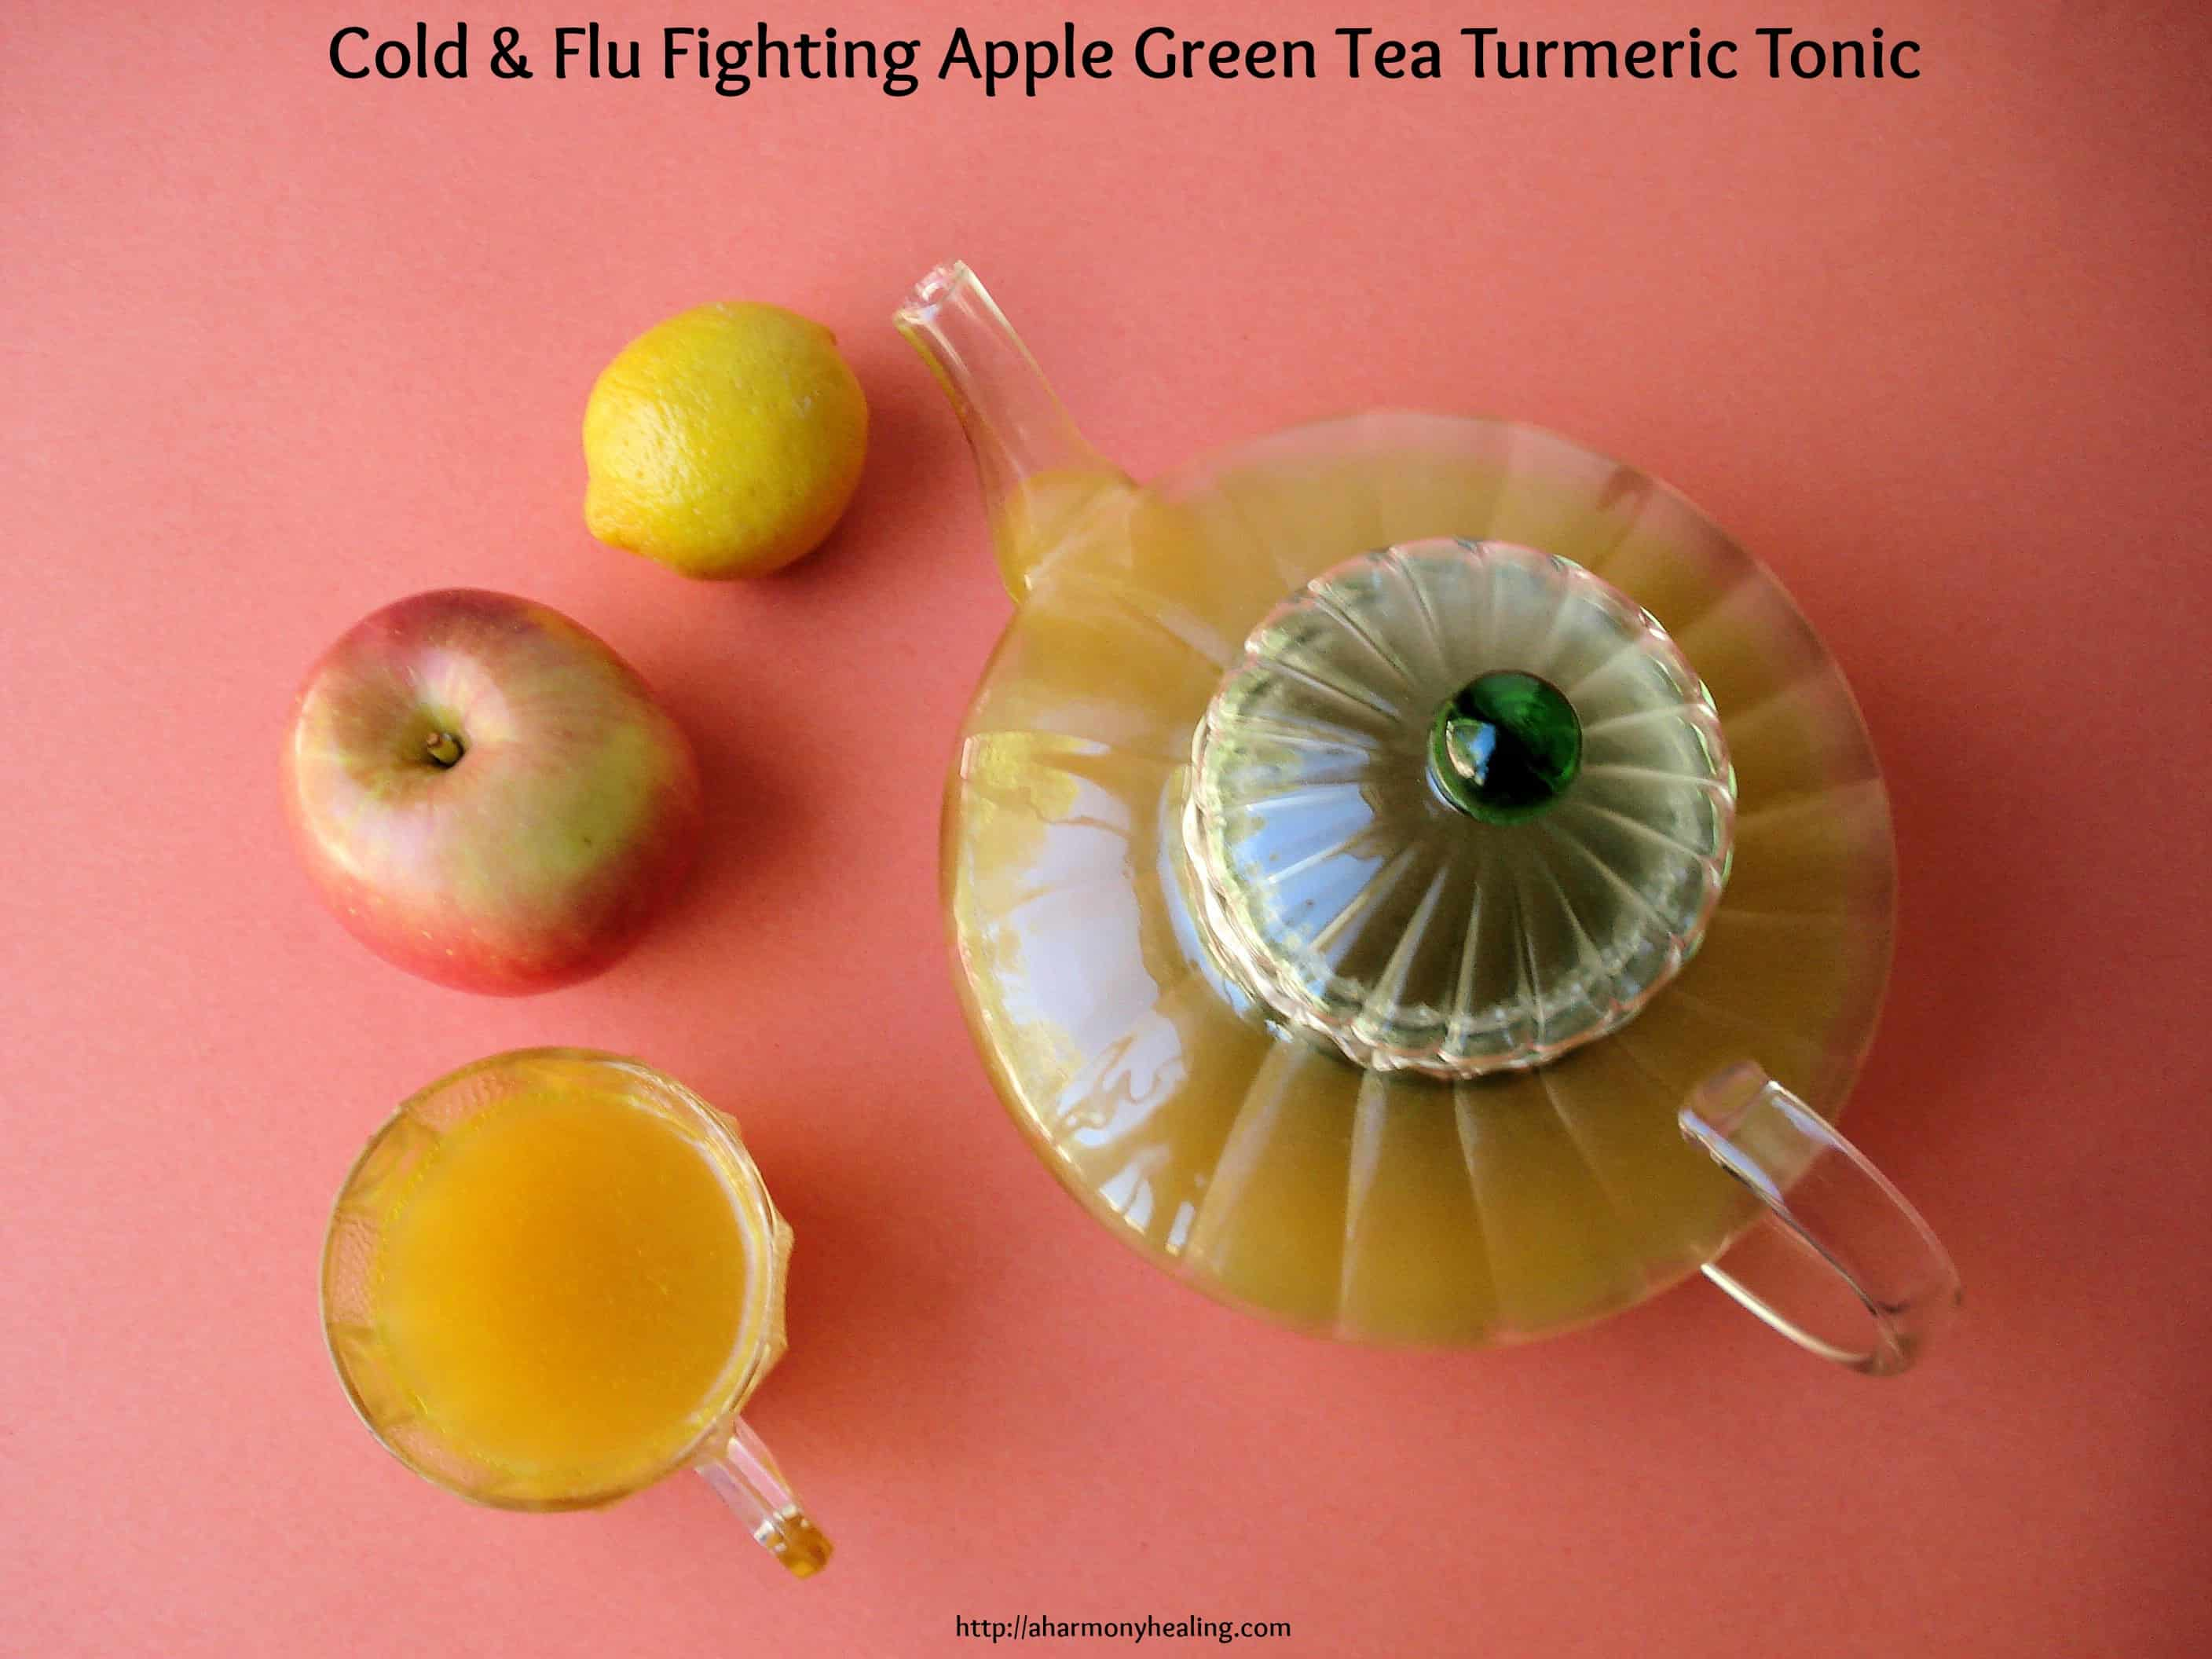 Cold and flu fighting apple green tea turmeric tonic